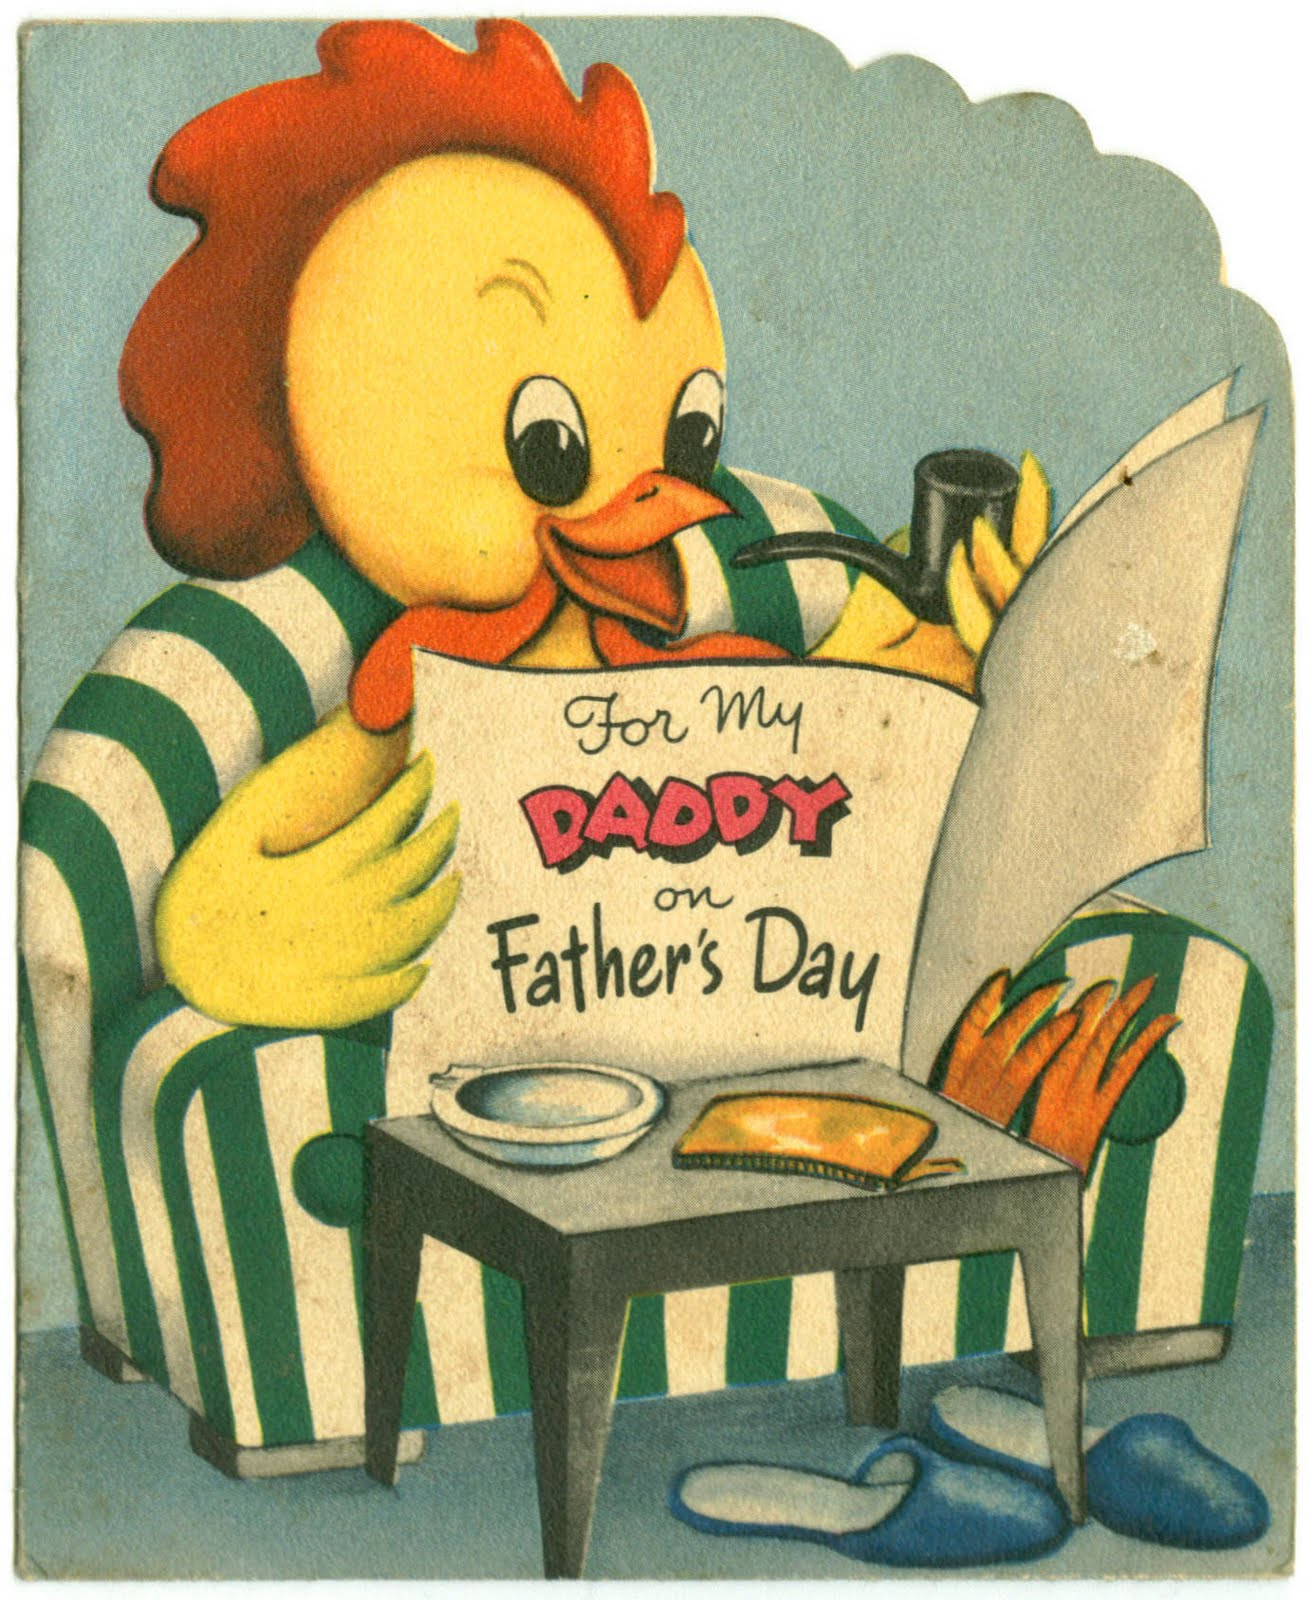 'For My Daddy on Father's Day' - date unknown